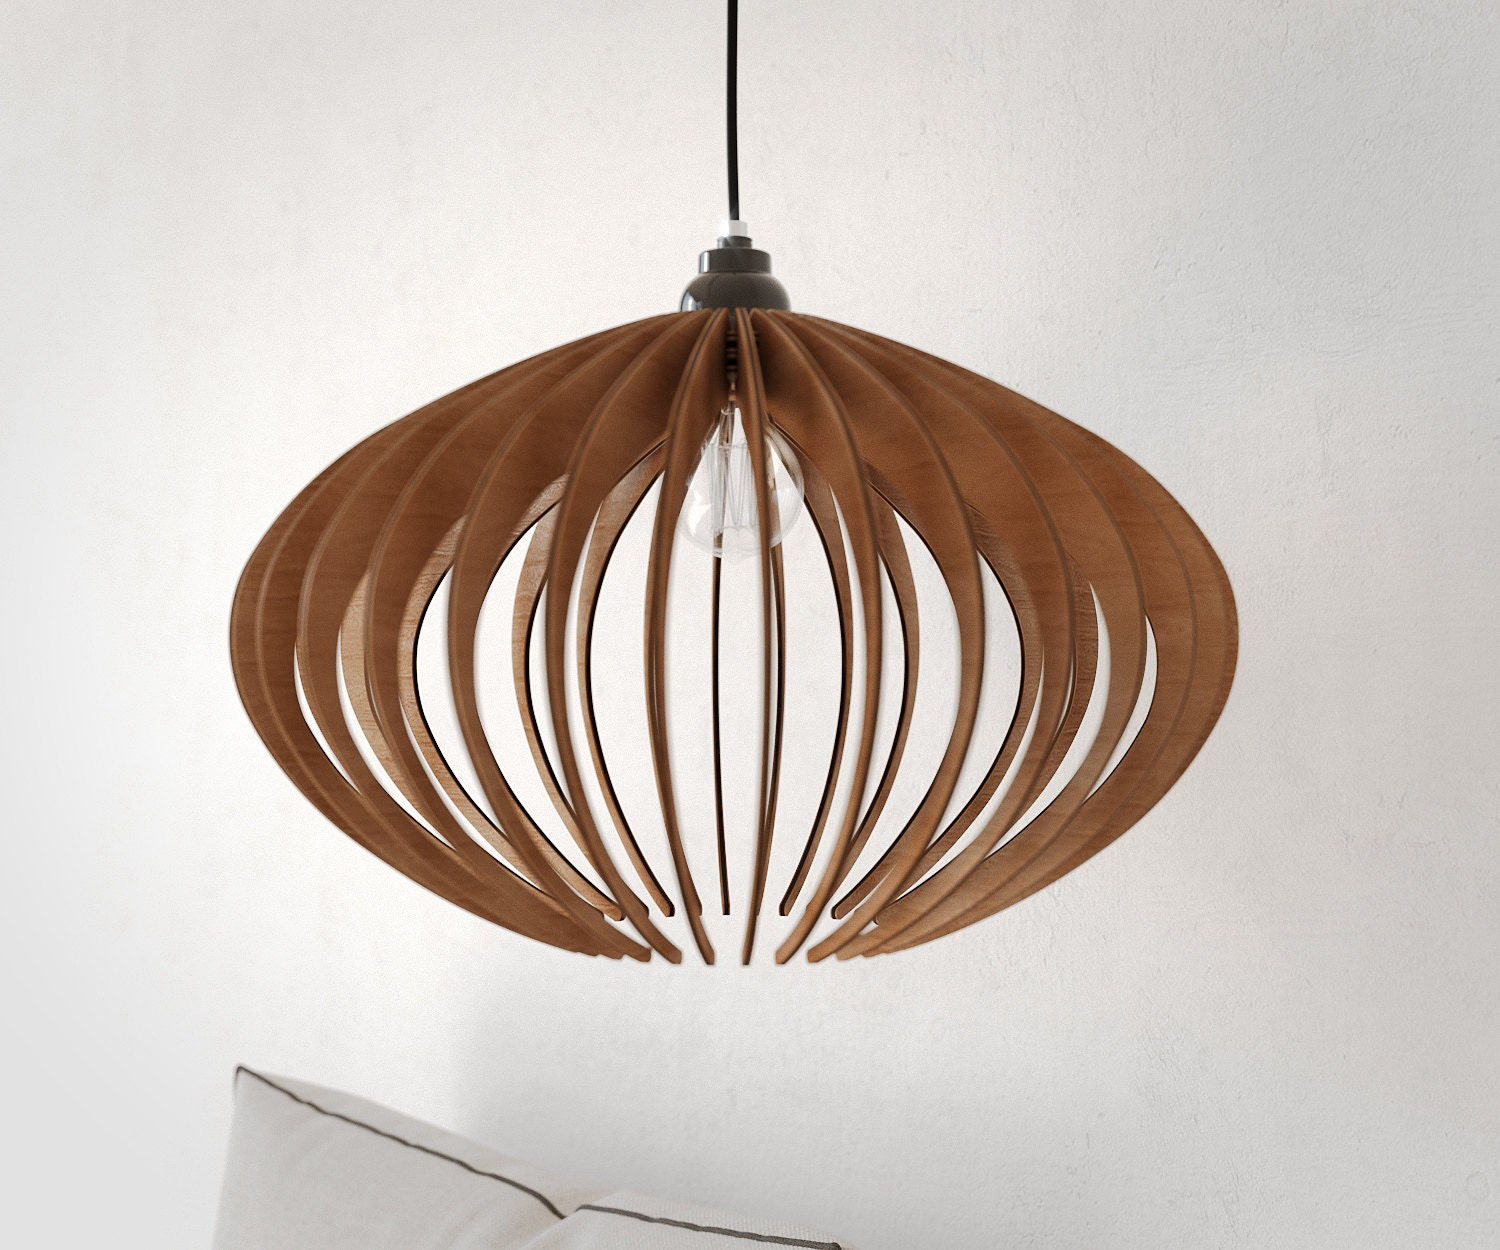 Wood Lighting Fixtures: Wood Pendant Light Wood Chandelier Wood Ceiling Lamp Modern